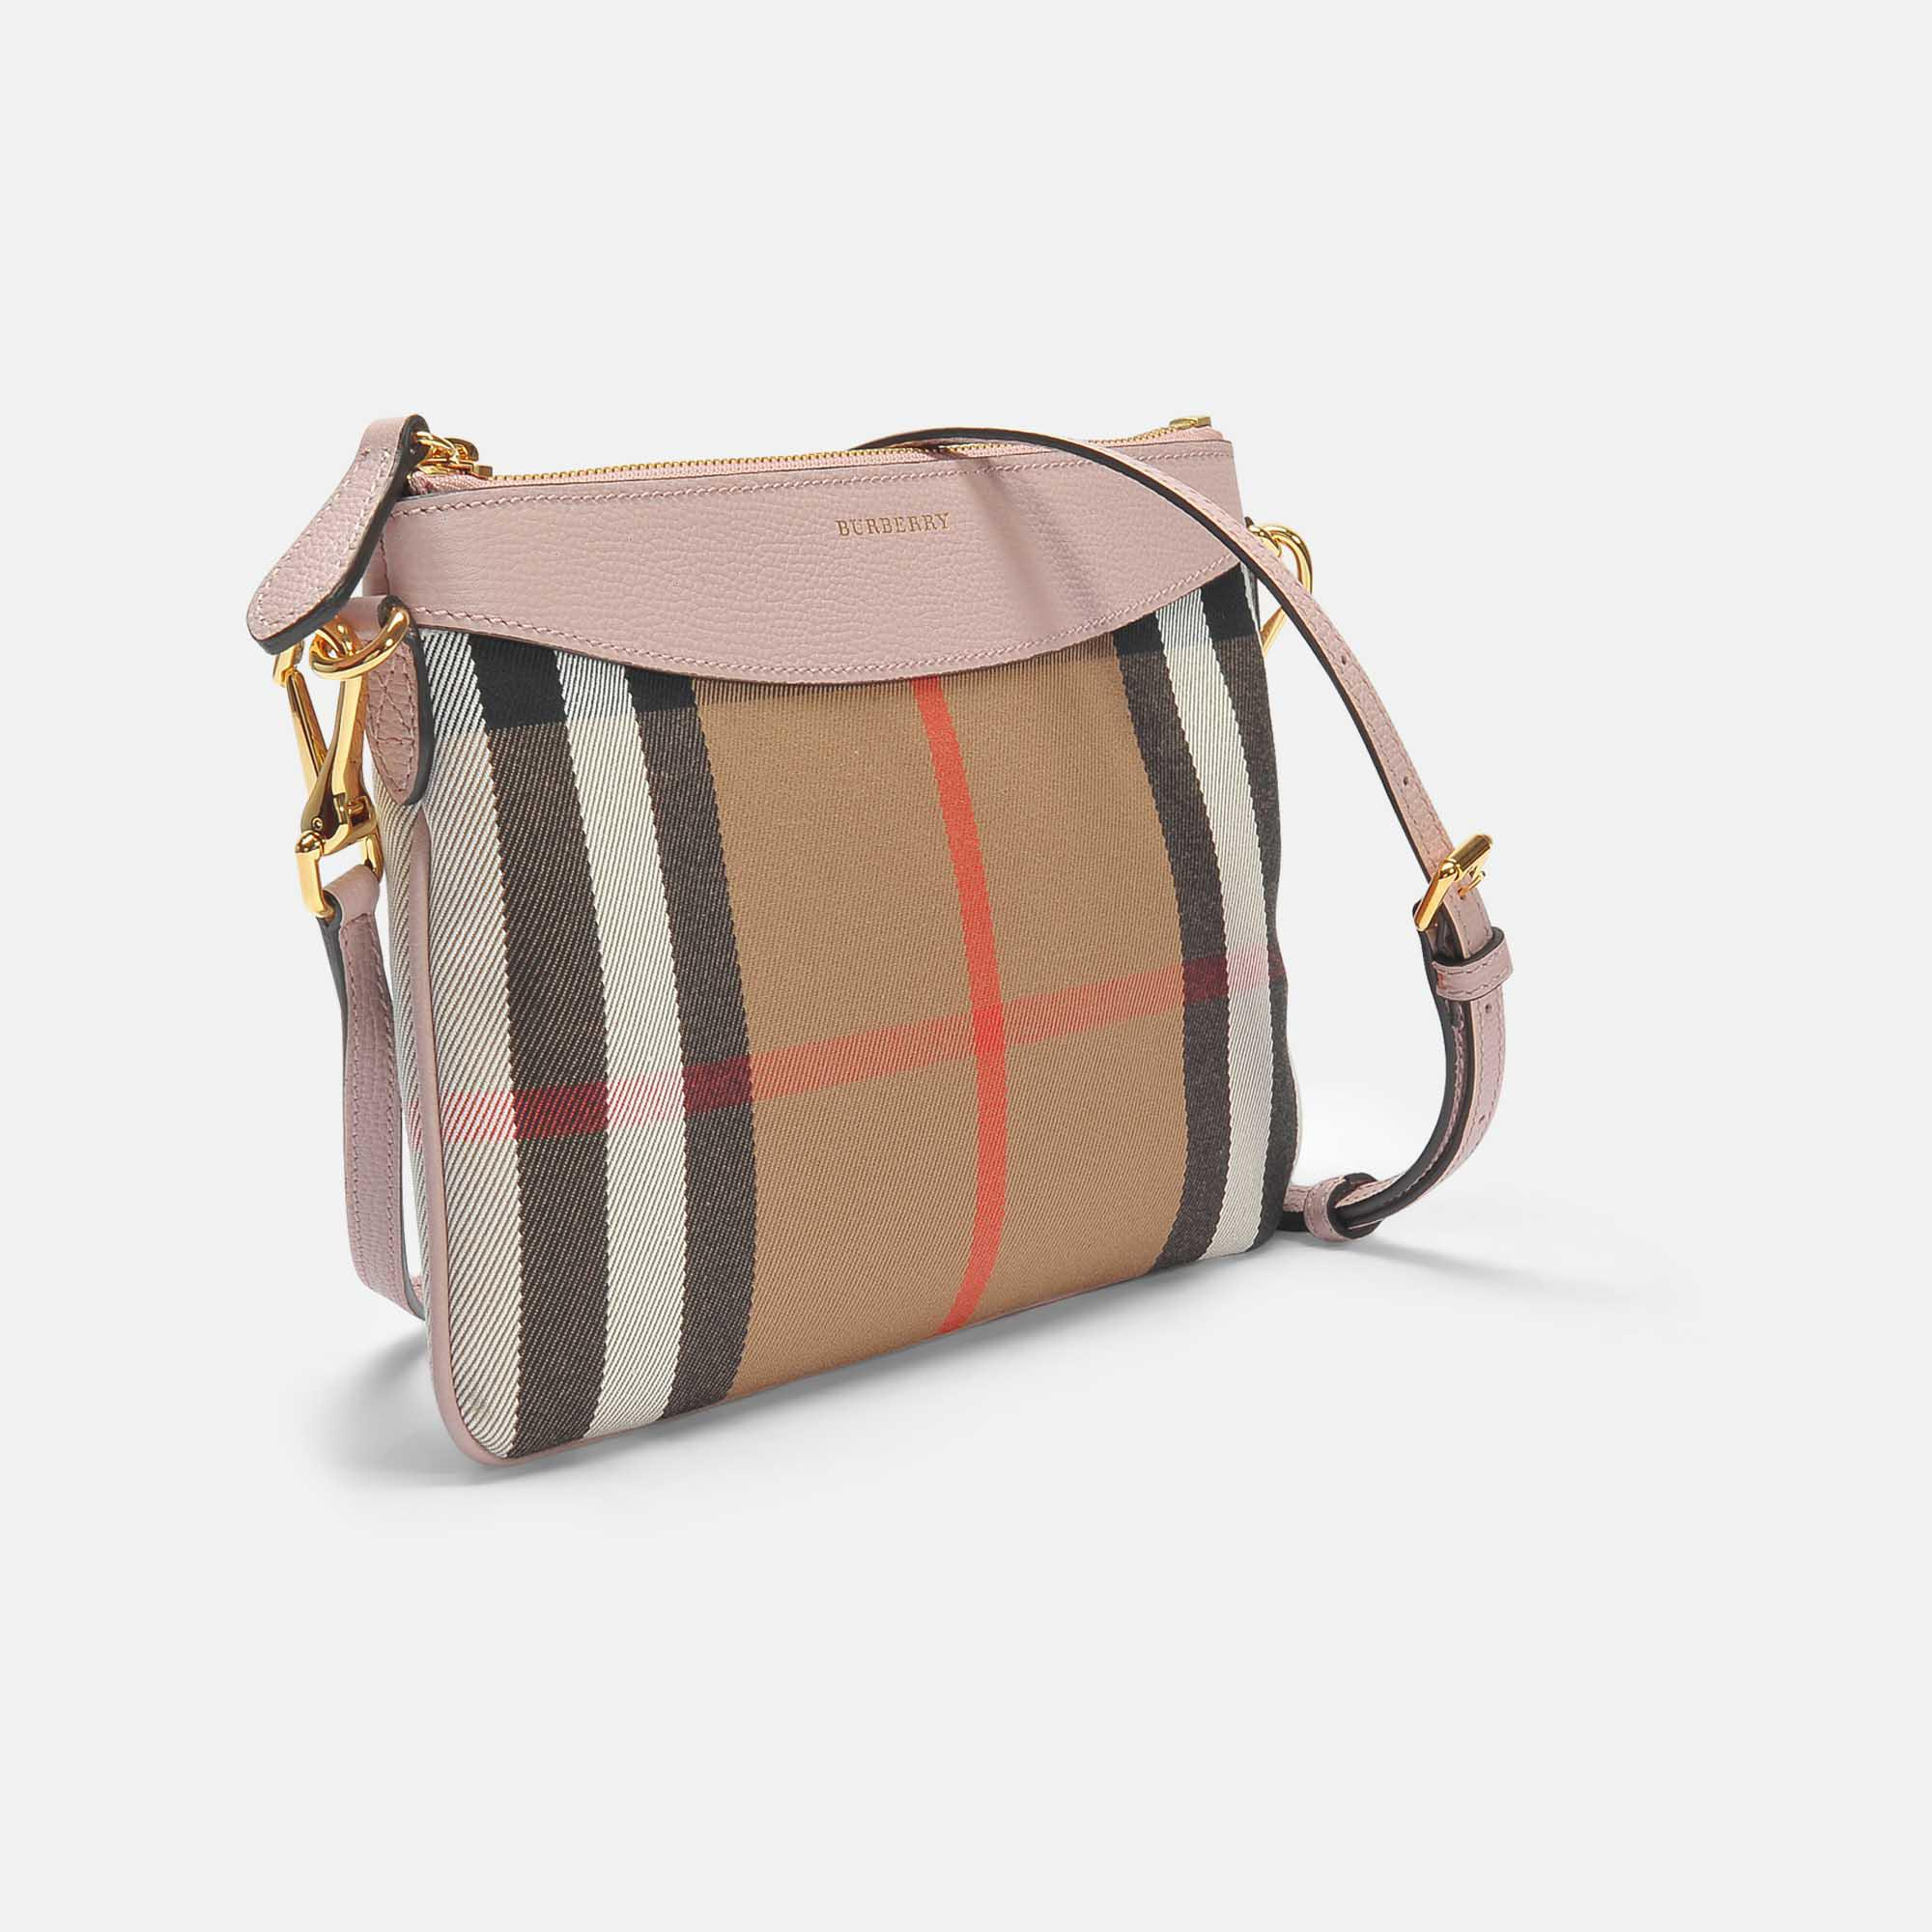 Peyton Pouch Bag in Pale Orchid Grained Calfskin Burberry uSaiflef